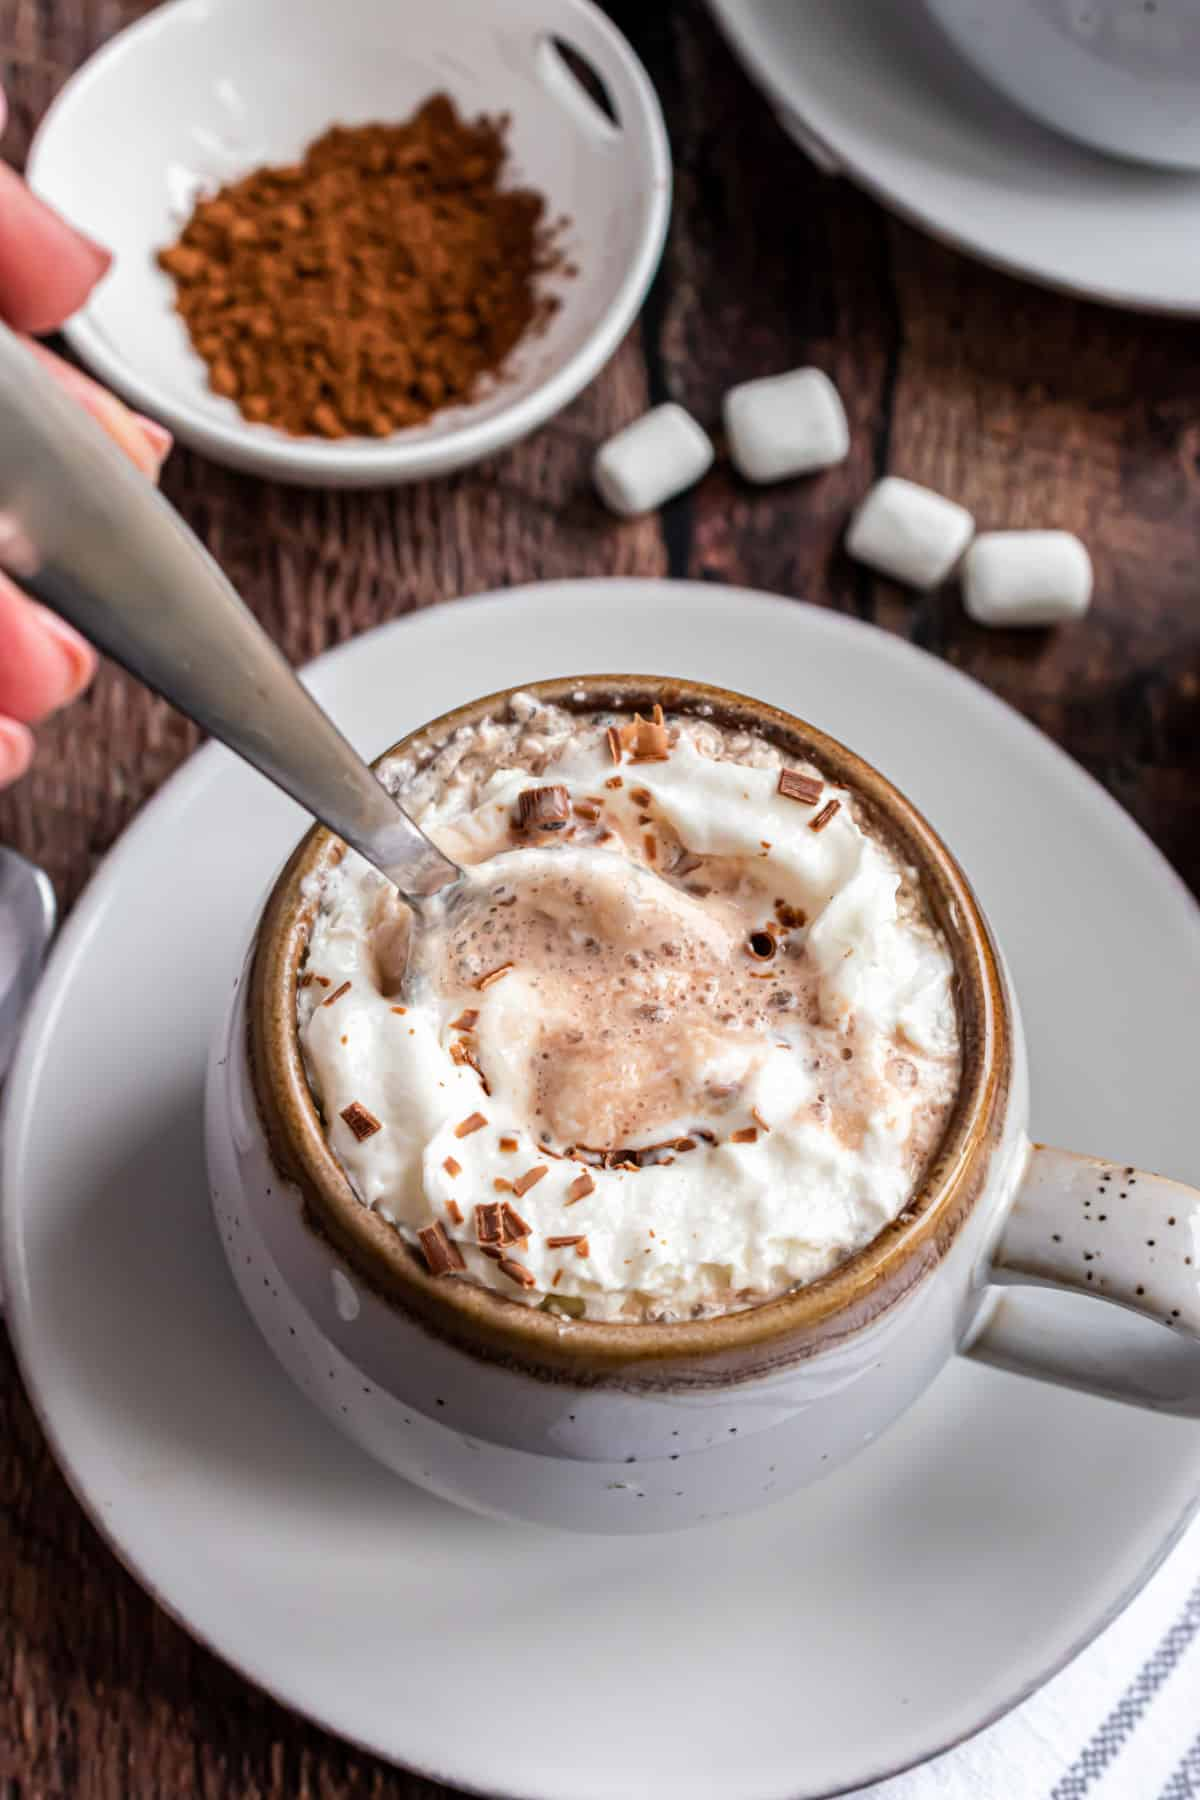 Homemade hot cocoa in a ceramic mug topped with whipped cream.